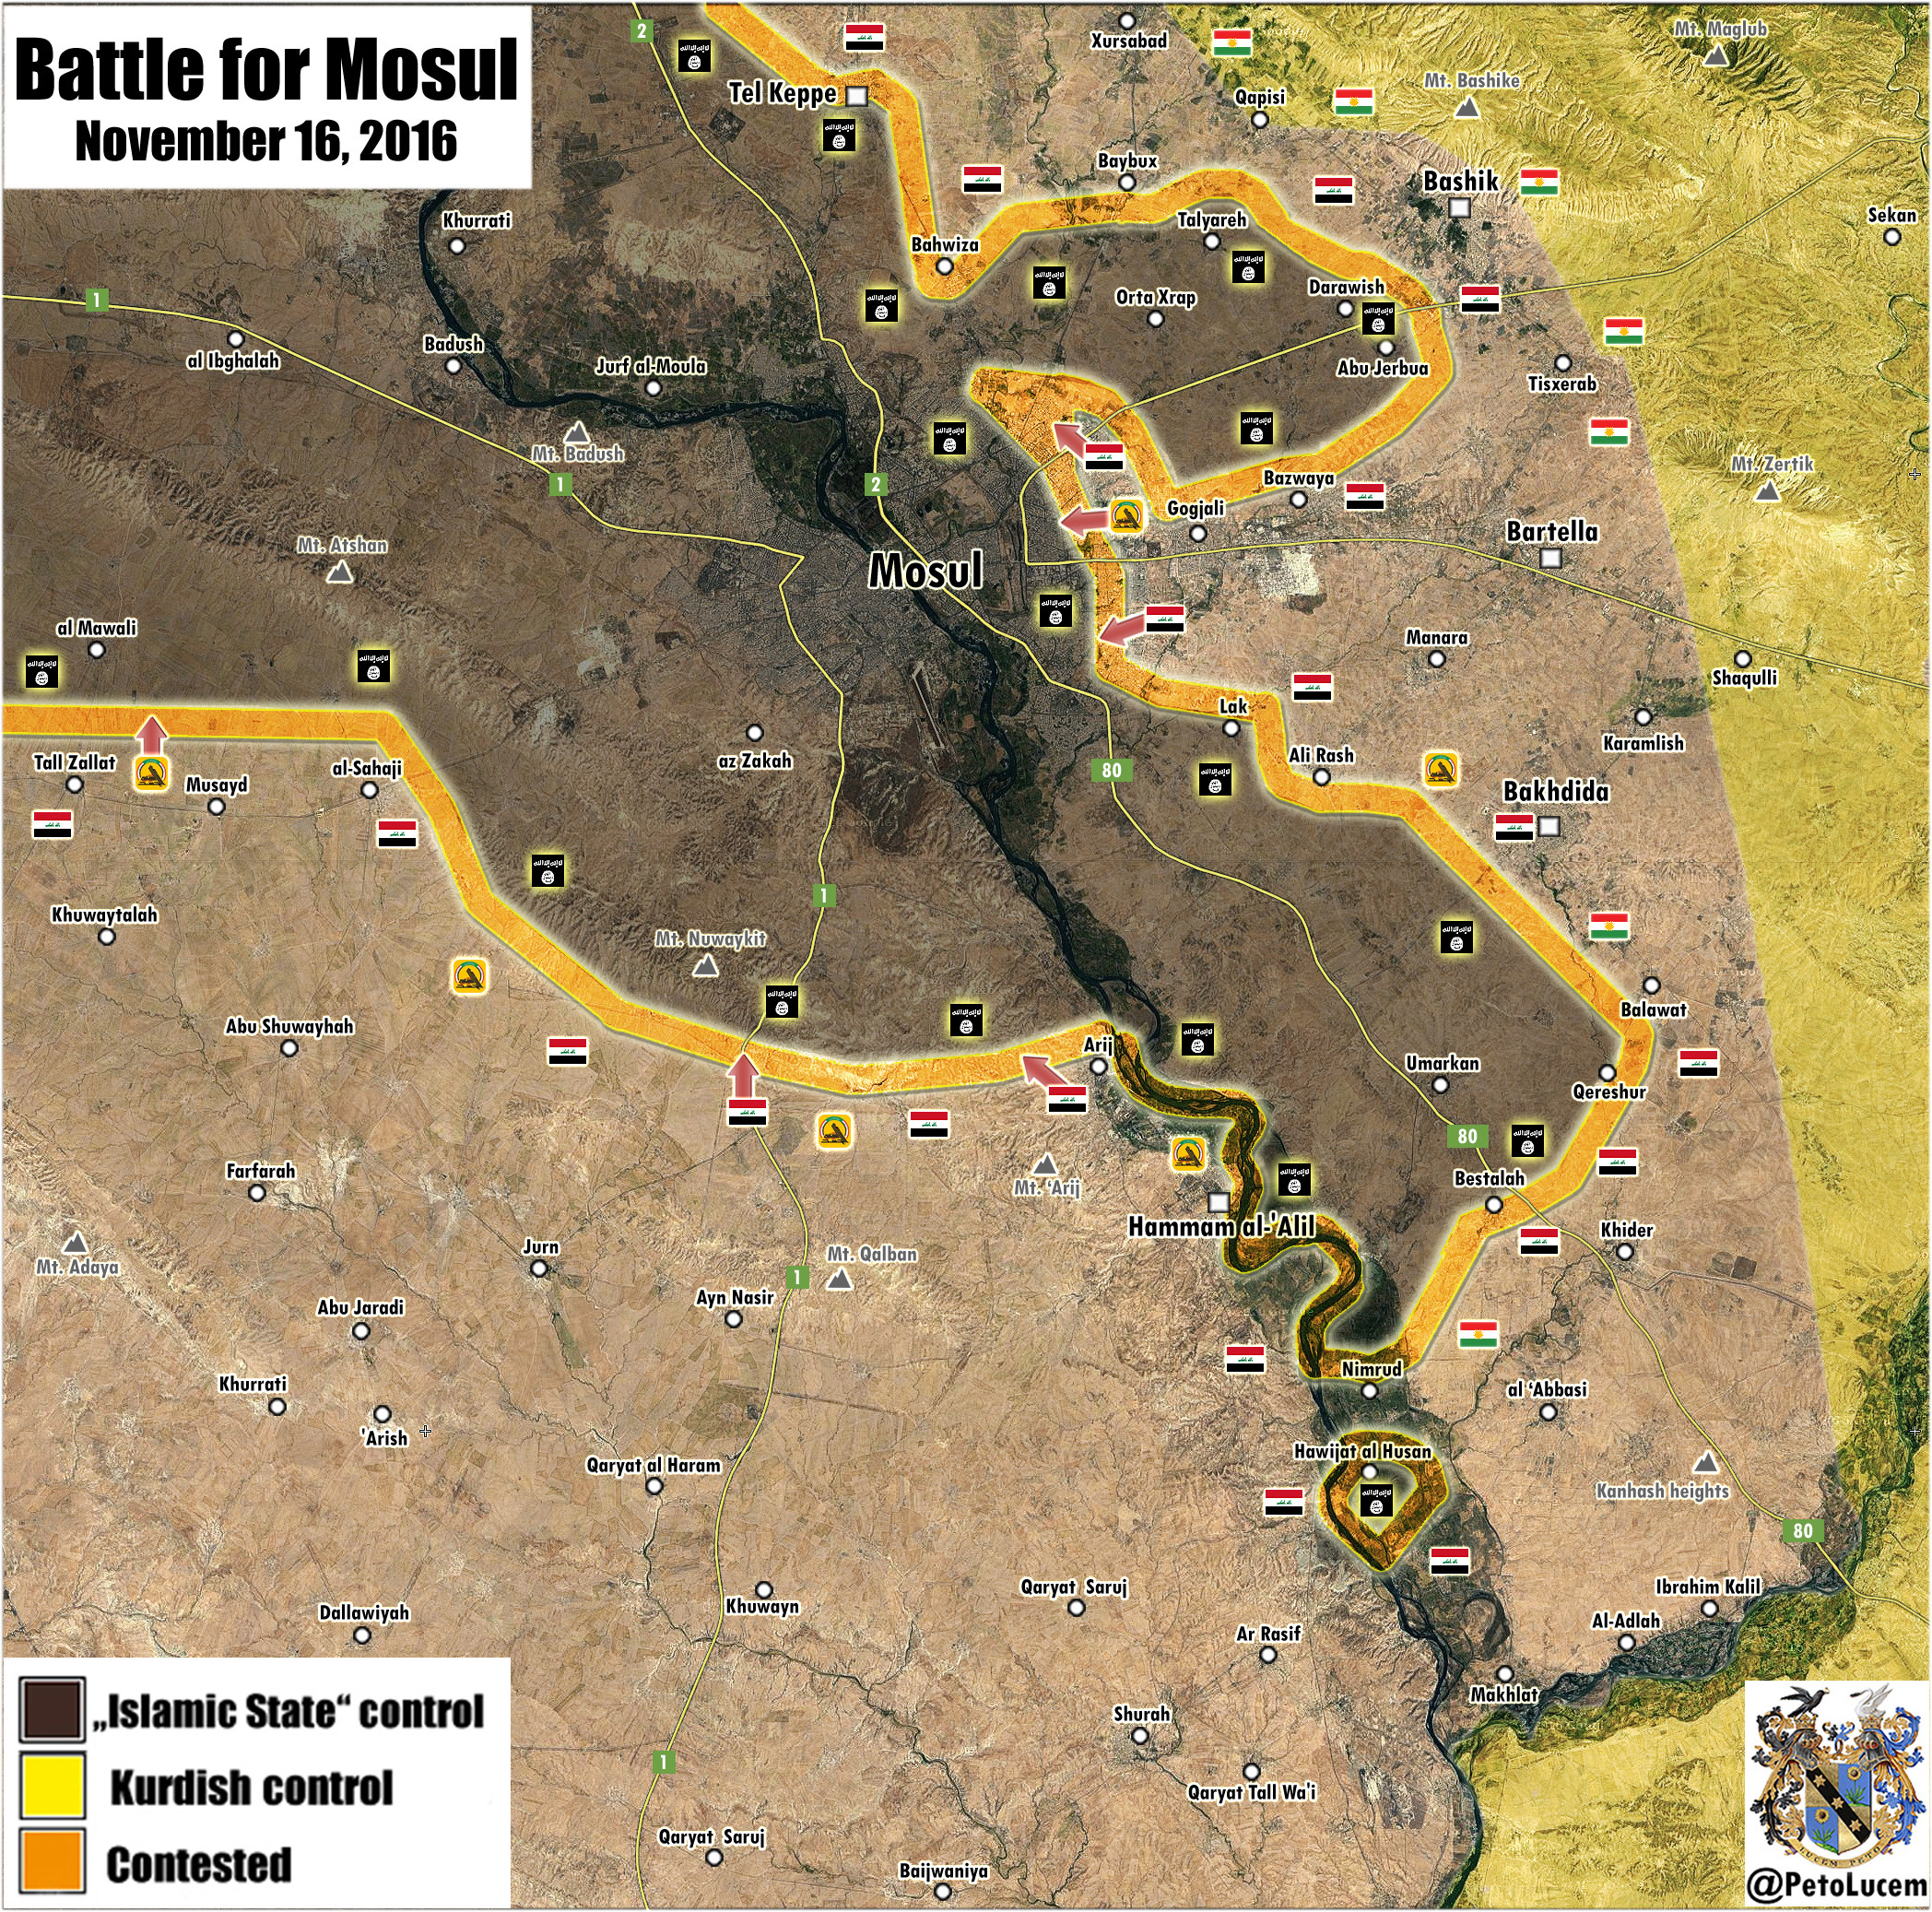 Iraqi War Map Update: Battle for Mosul on November 16, 2016